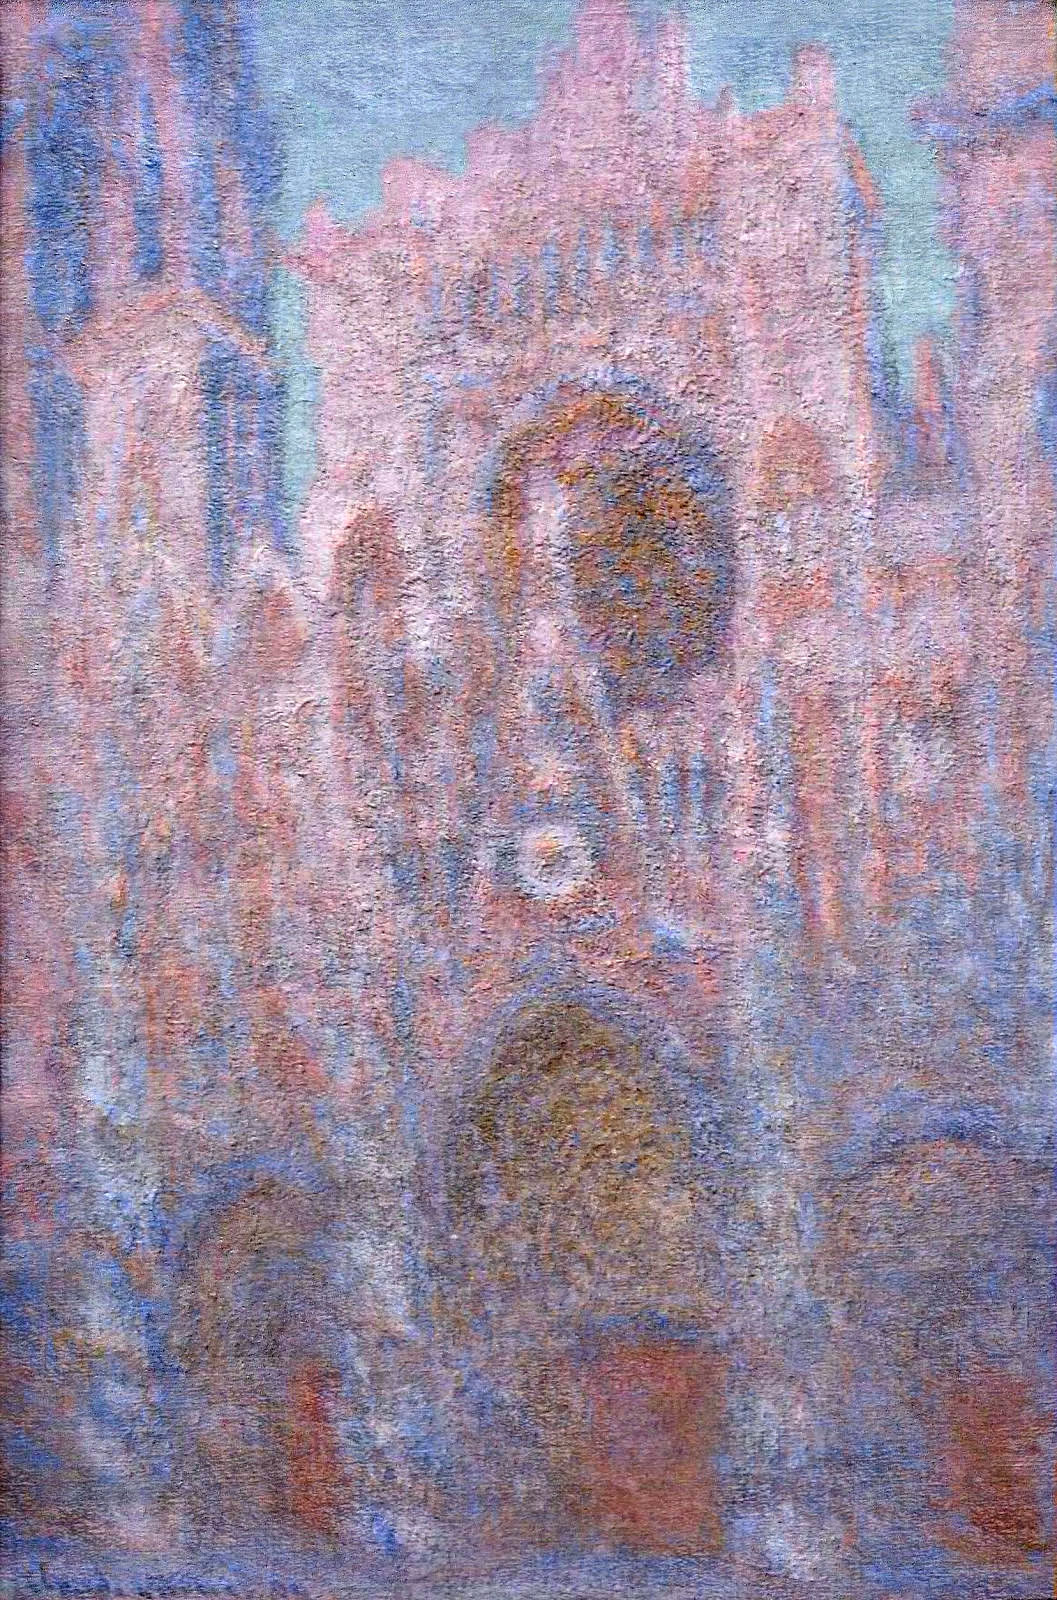 Claude Monet, Rouen Cathedral, Symphony in Grey and Rose, 1892-94, National Museums and Galleries of Wales, The Davies Sisters Collection